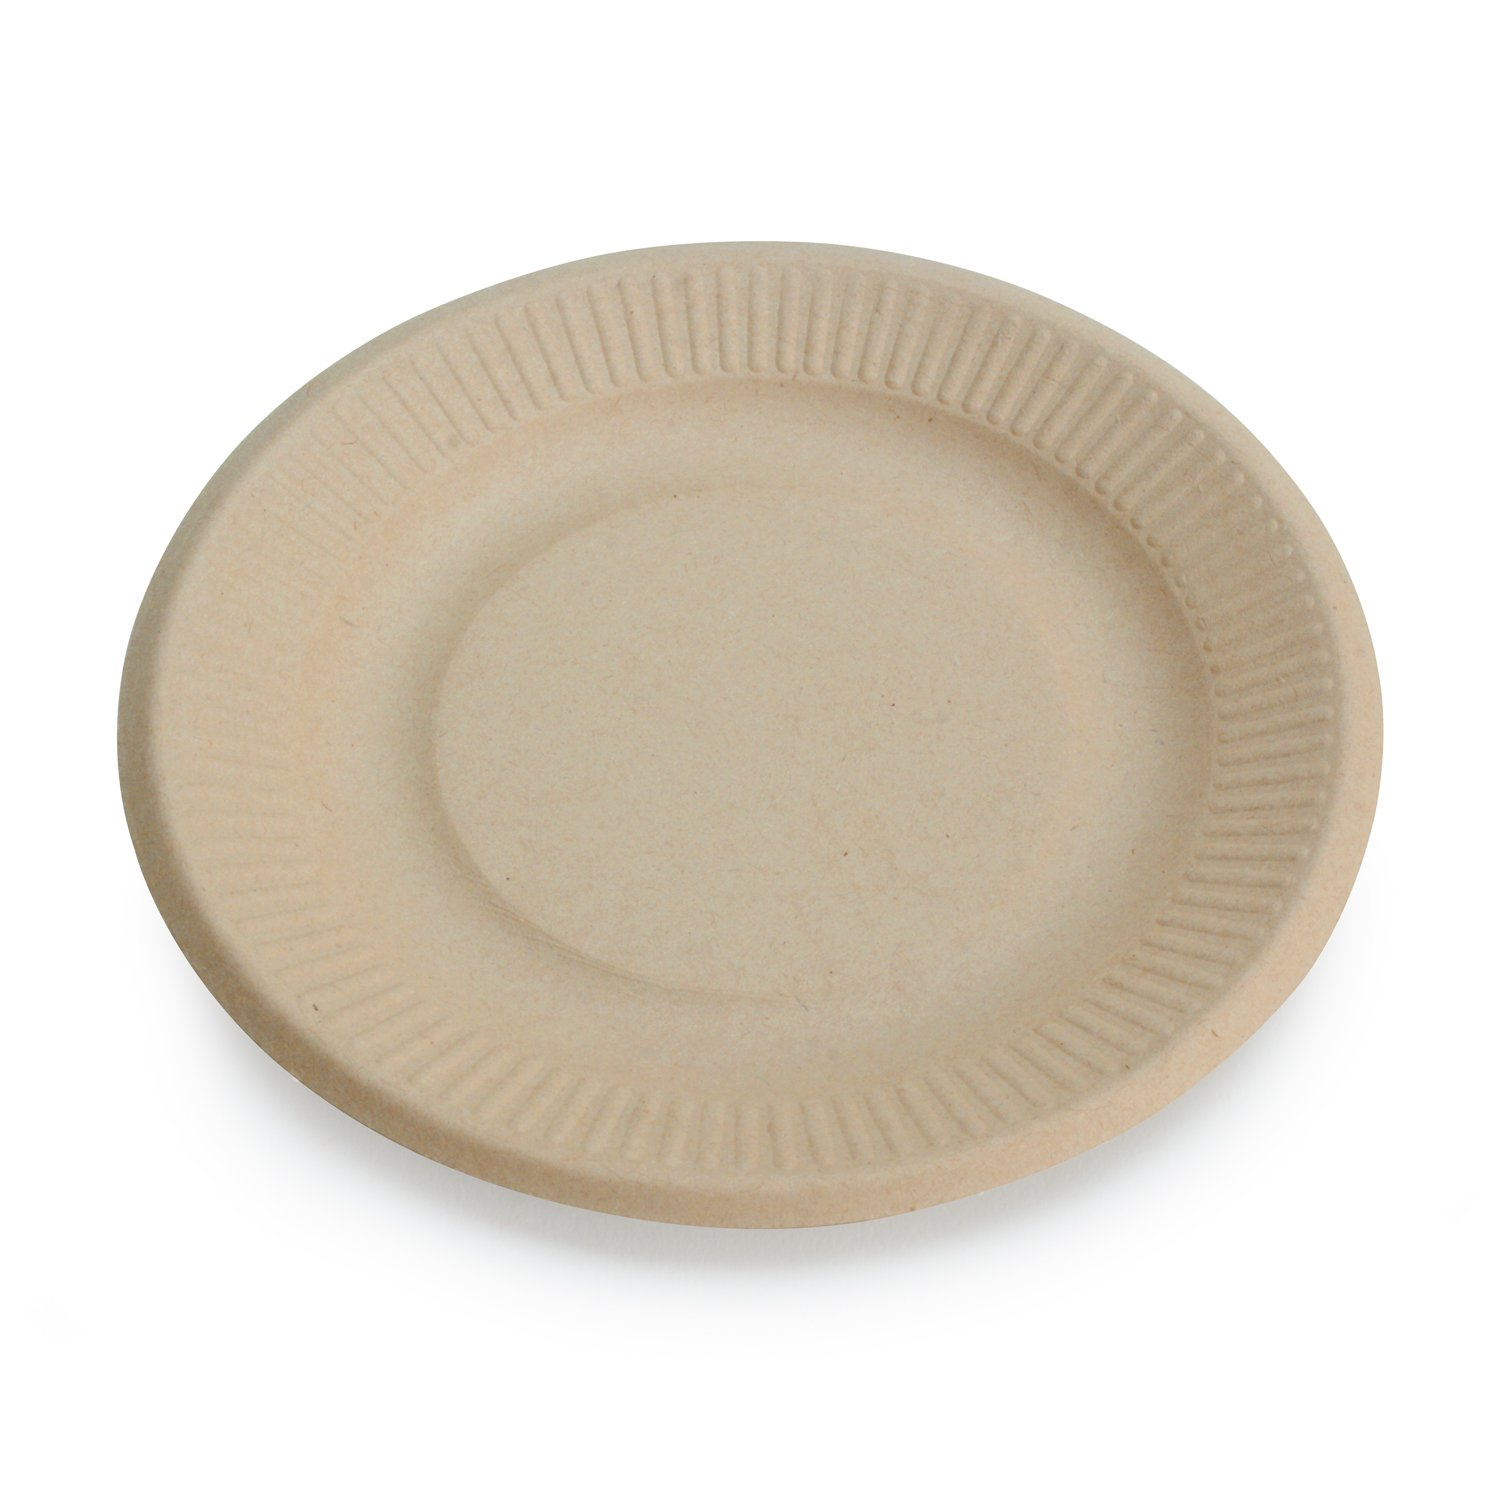 Earth's Natural Alternative Eco-Friendly, Natural Compostable Plant Fiber 6'' Plate, Natural, 1000 Count by Earth's Natural Alternative